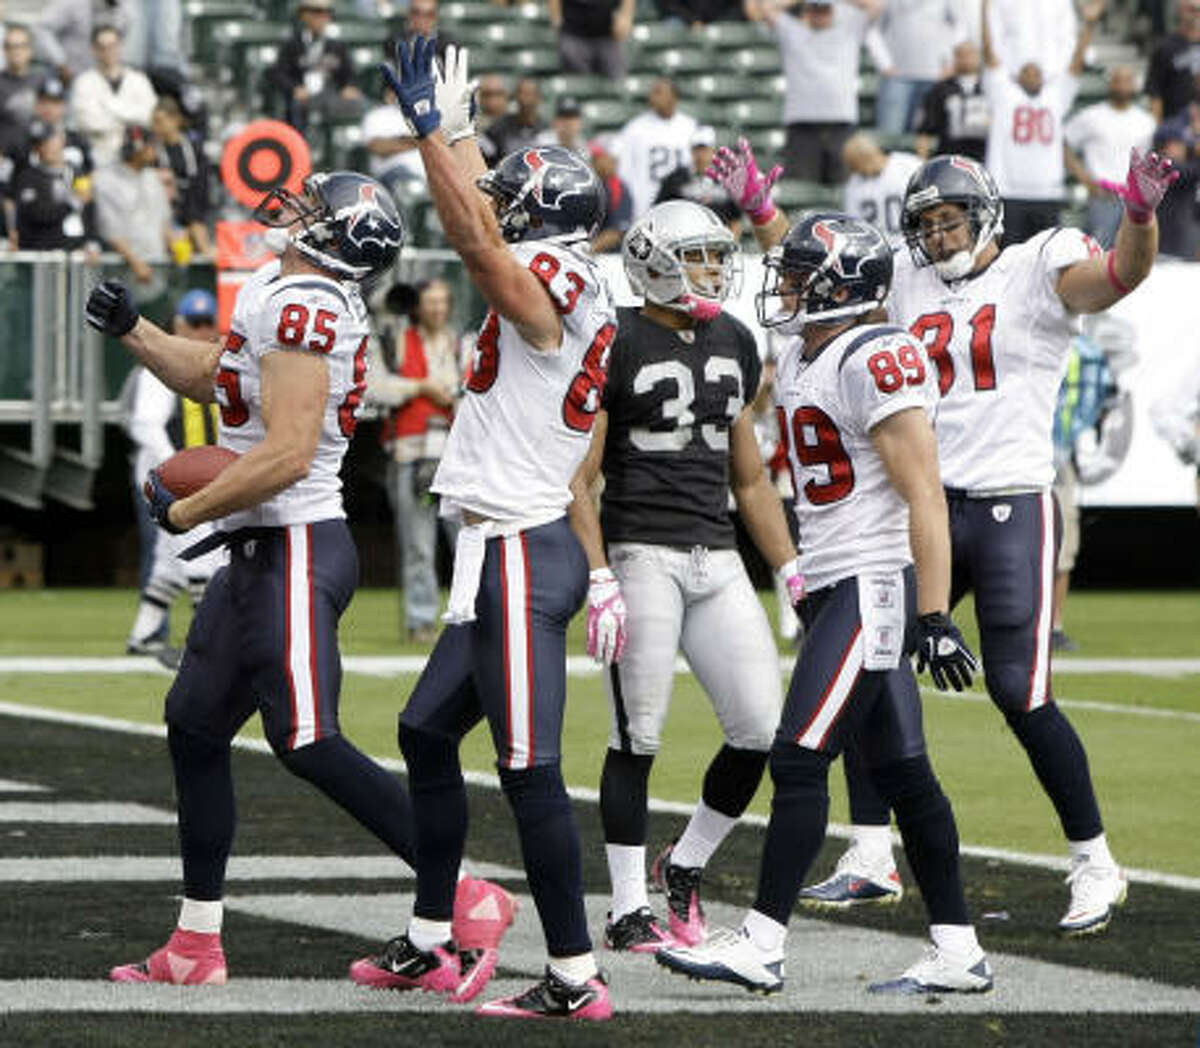 Texans tight end Joel Dreessen (85) celebrates his 11-yard touchdown reception with teammates Kevin Walter (83), David Anderson (89) and Owen Daniels (81) during the first quarter.